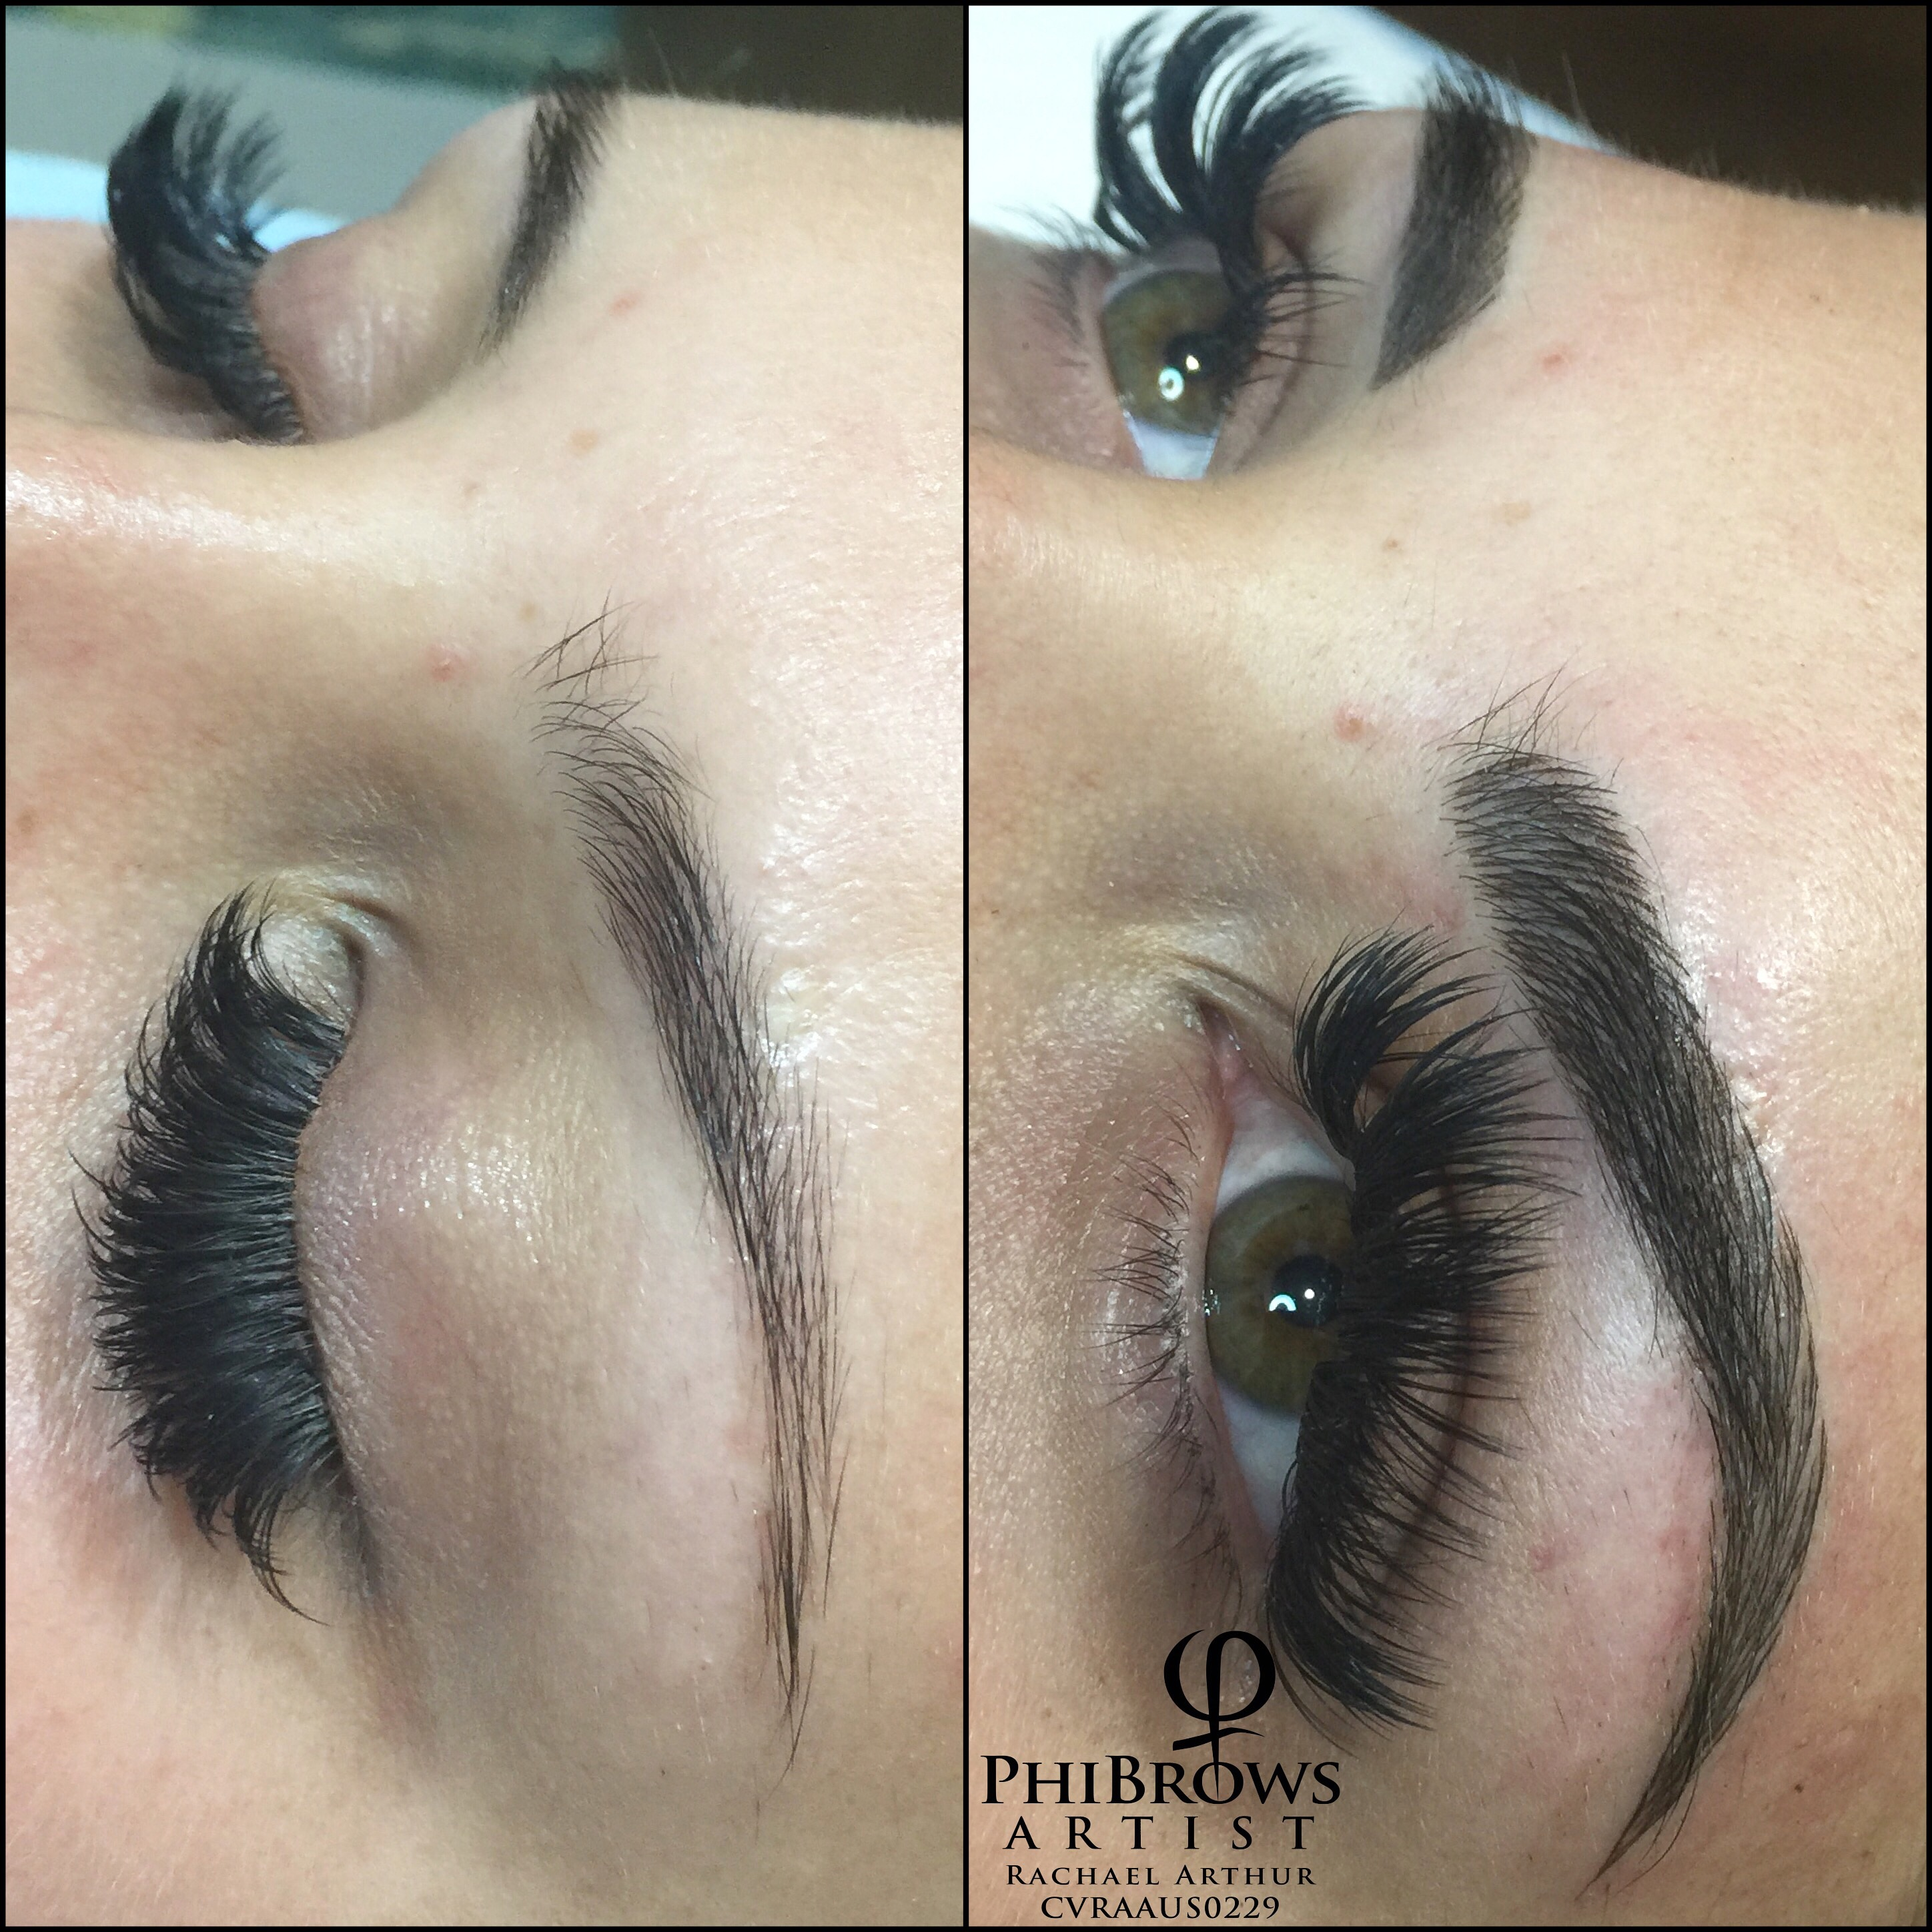 51a83eac37d We do not have a 'one style fits all' policy. Please see the photo's below  which show just some of the many different brows achieved with us.